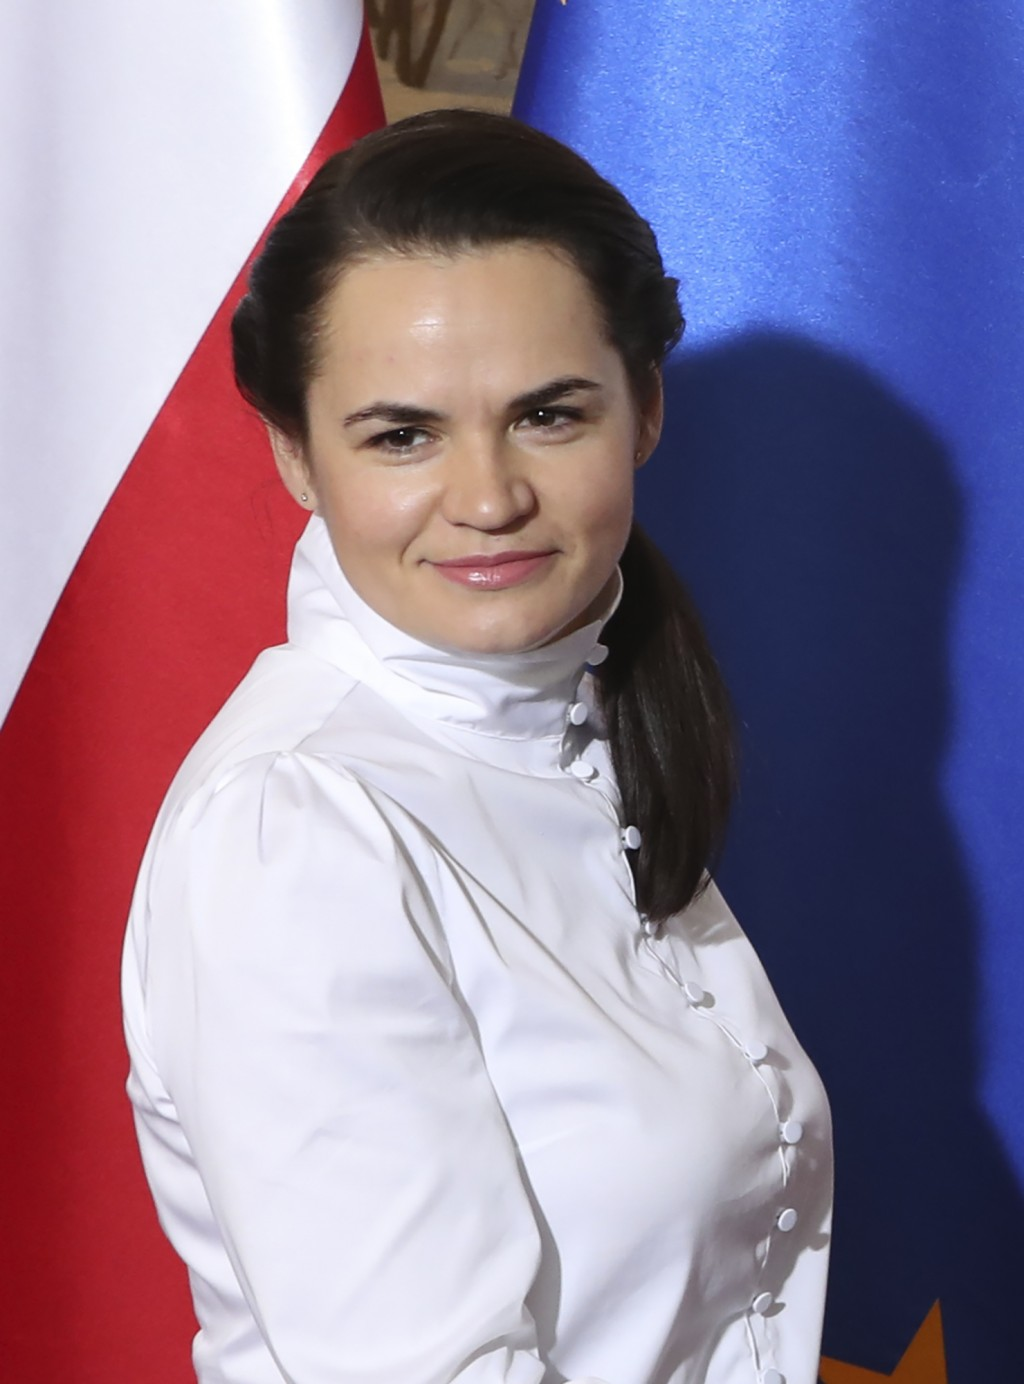 Exiled Belarusian opposition leader Sviatlana Tsikhanouskaya is pictured as she visits the Polish Prime Minister in Warsaw, Poland, Wednesday, Sept. 9...